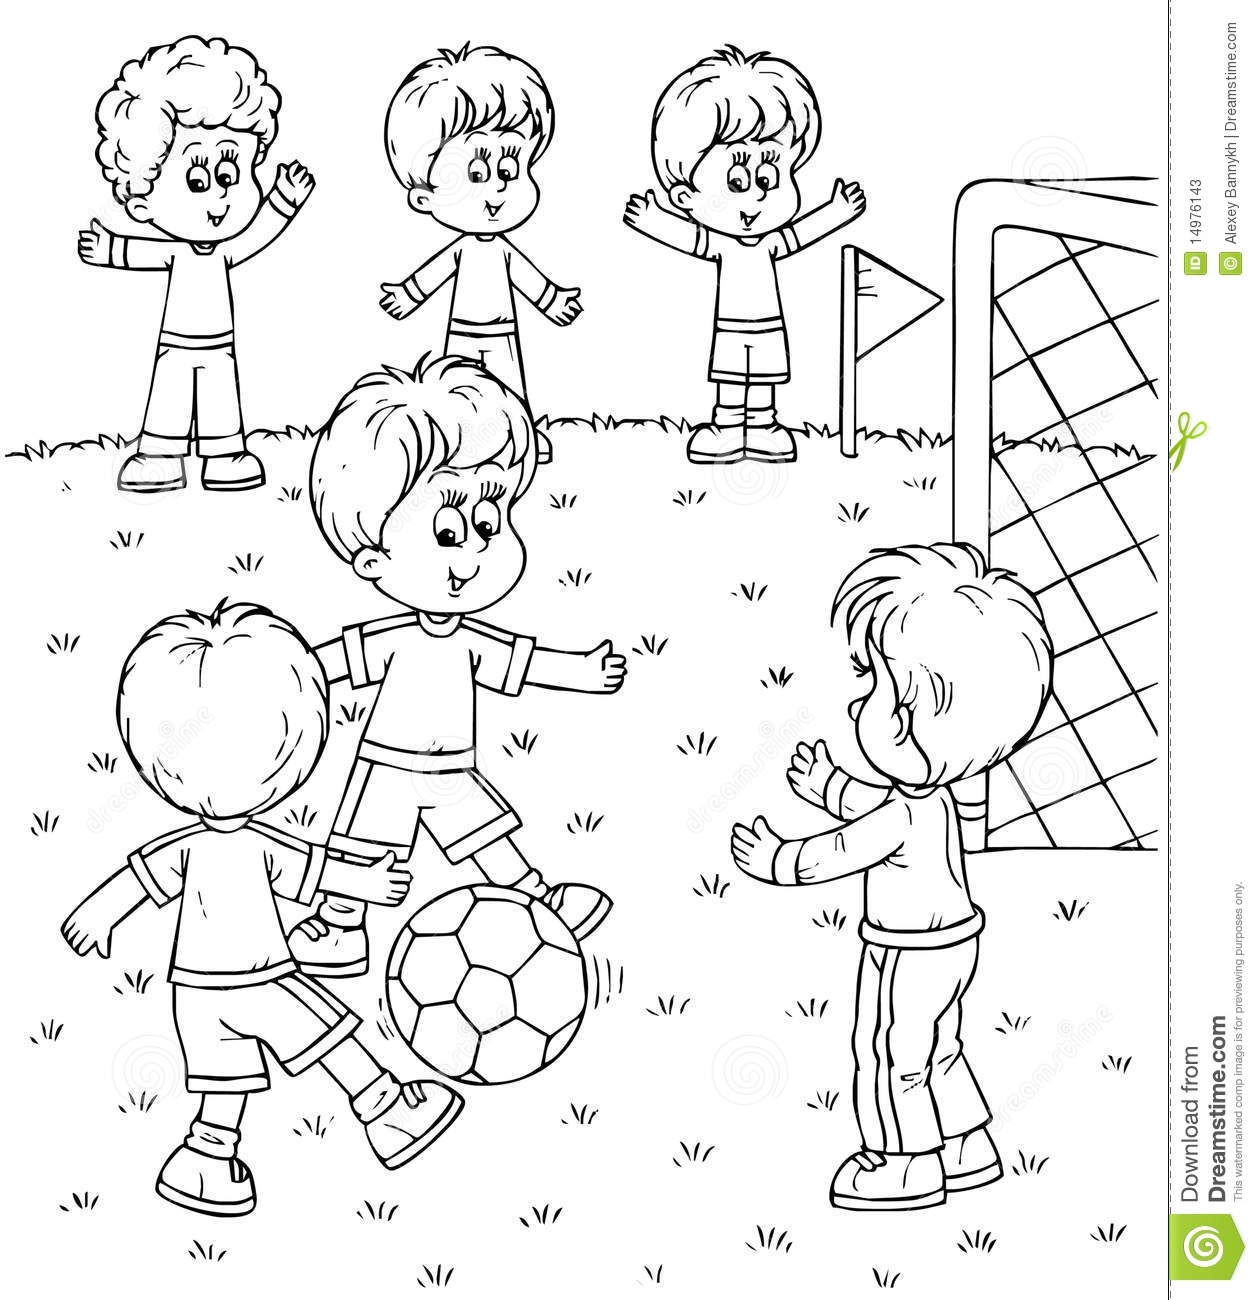 Peg game black and white clipart.